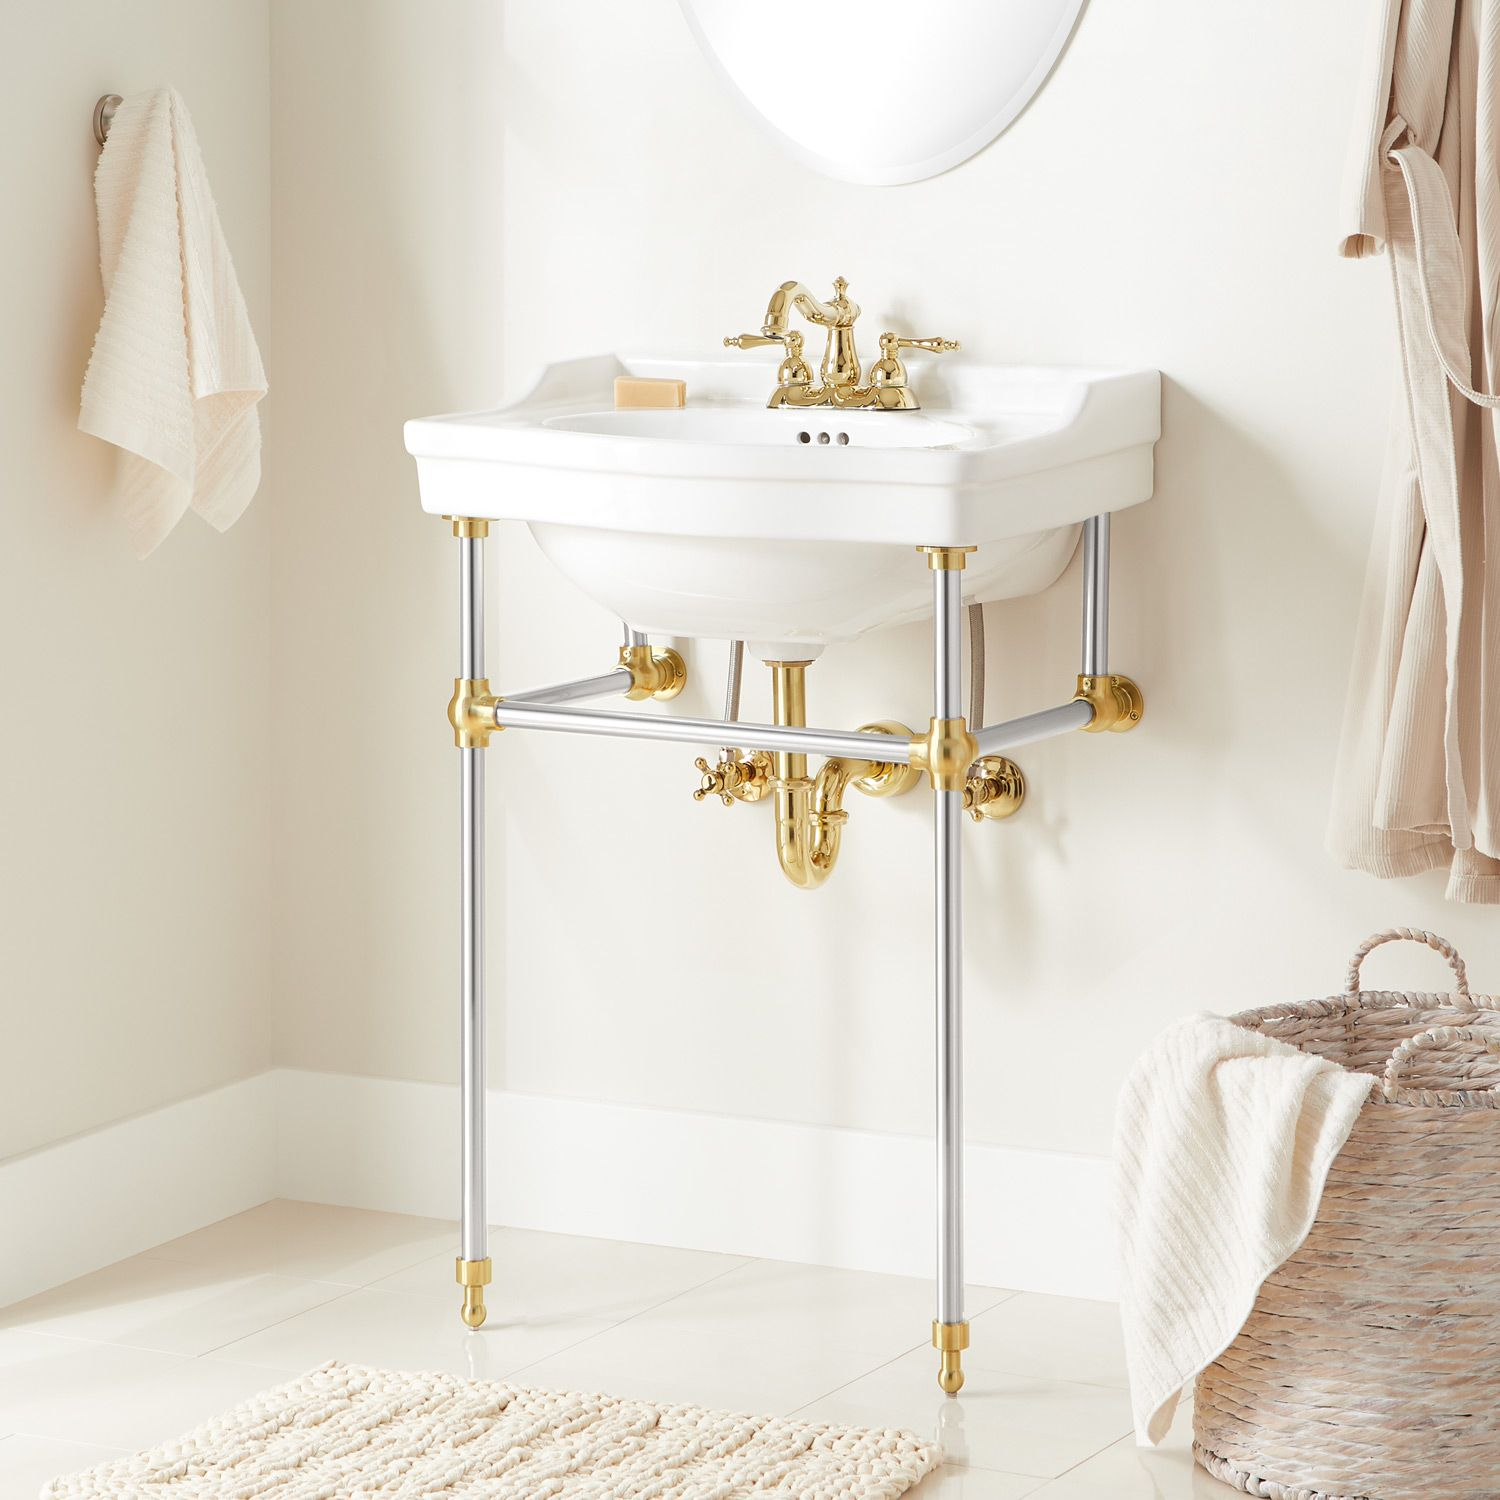 An Ideal Choice For Small Bathrooms The Cierra Console Sink Features Slender Legs To Supports Its Stylish Traditi In 2020 Console Sink Bathroom Console Brass Bathroom